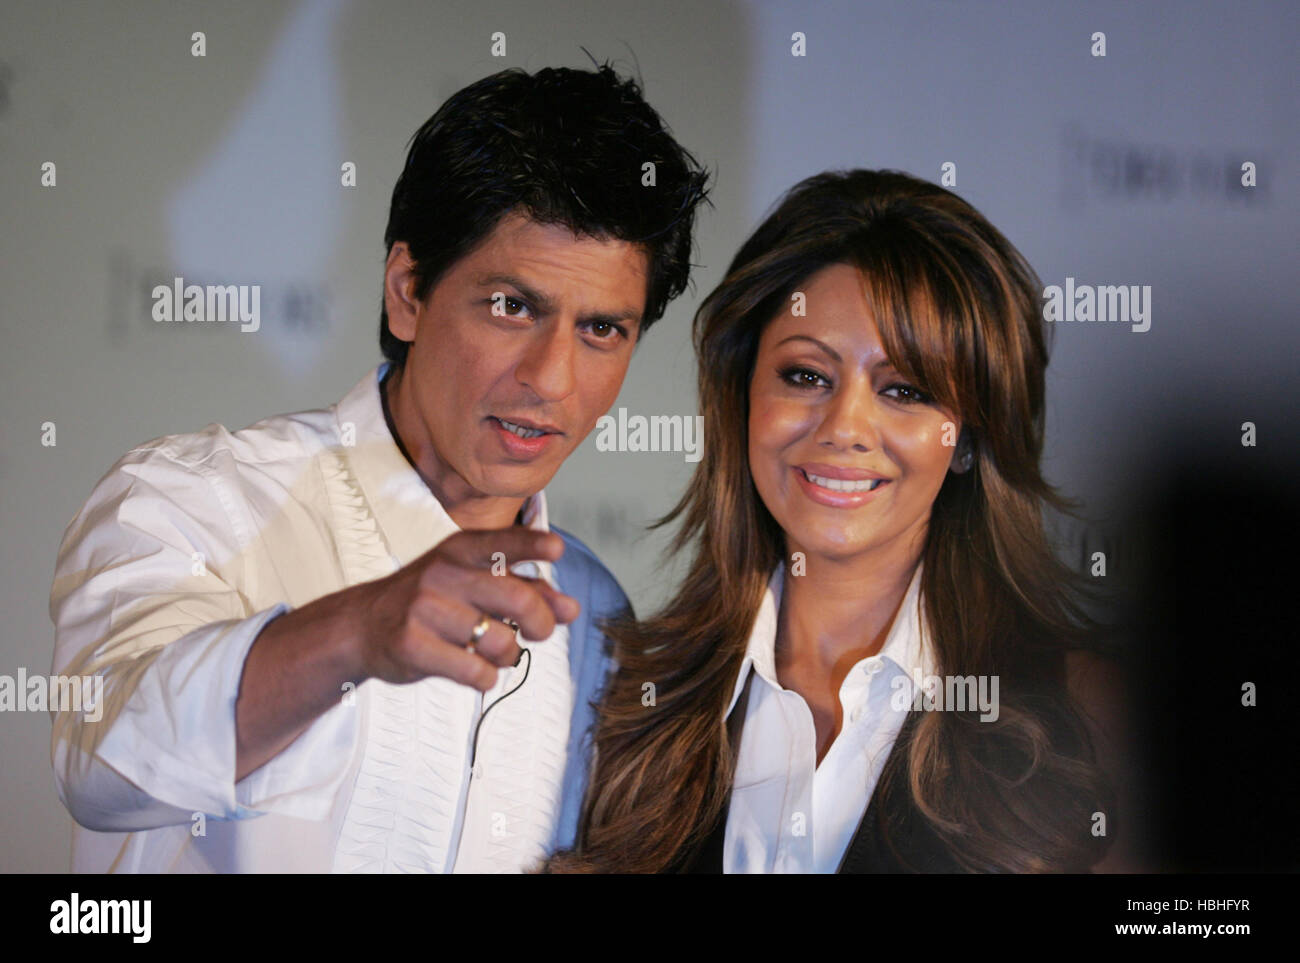 Bollywood actor Shah Rukh Khan gestures Gauri Khan brand ambassadors D Décor during launch D Décor fashion - Stock Image